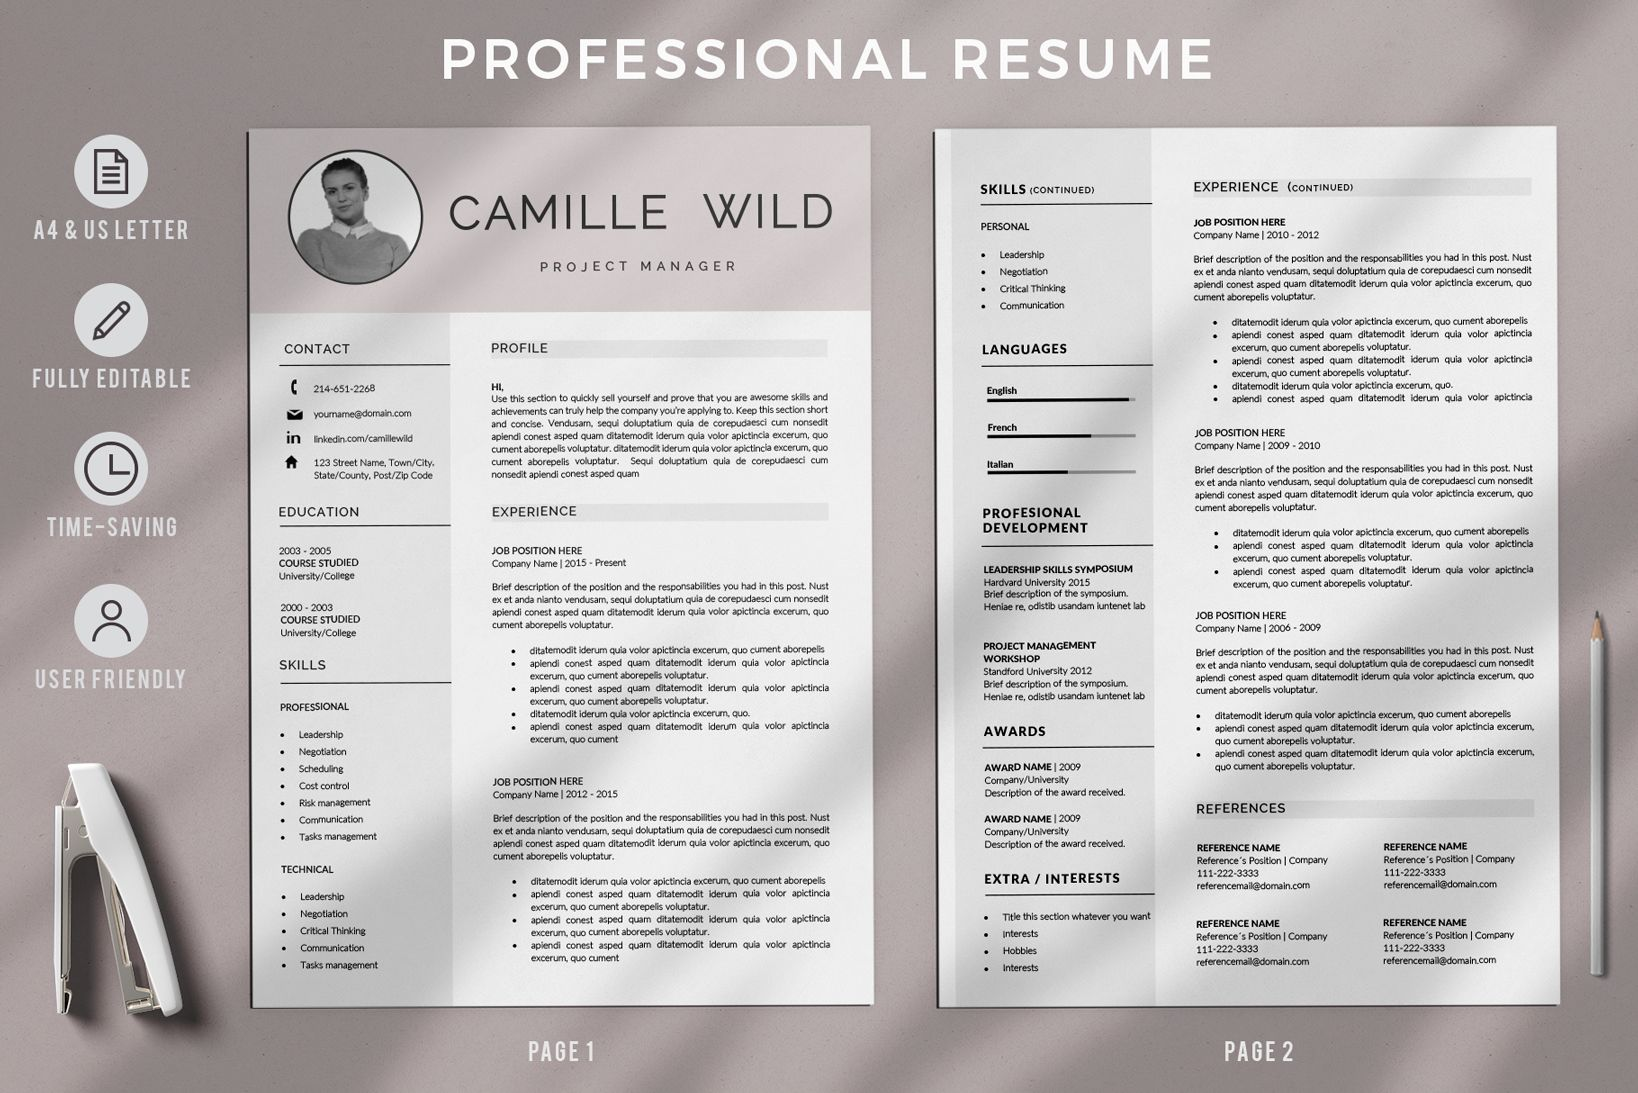 Creative Resume Templates For Ms Word And Mac Pages Professional Resume Template Cover Letter For Resume Cv Template Professional Downloadable Resume Template